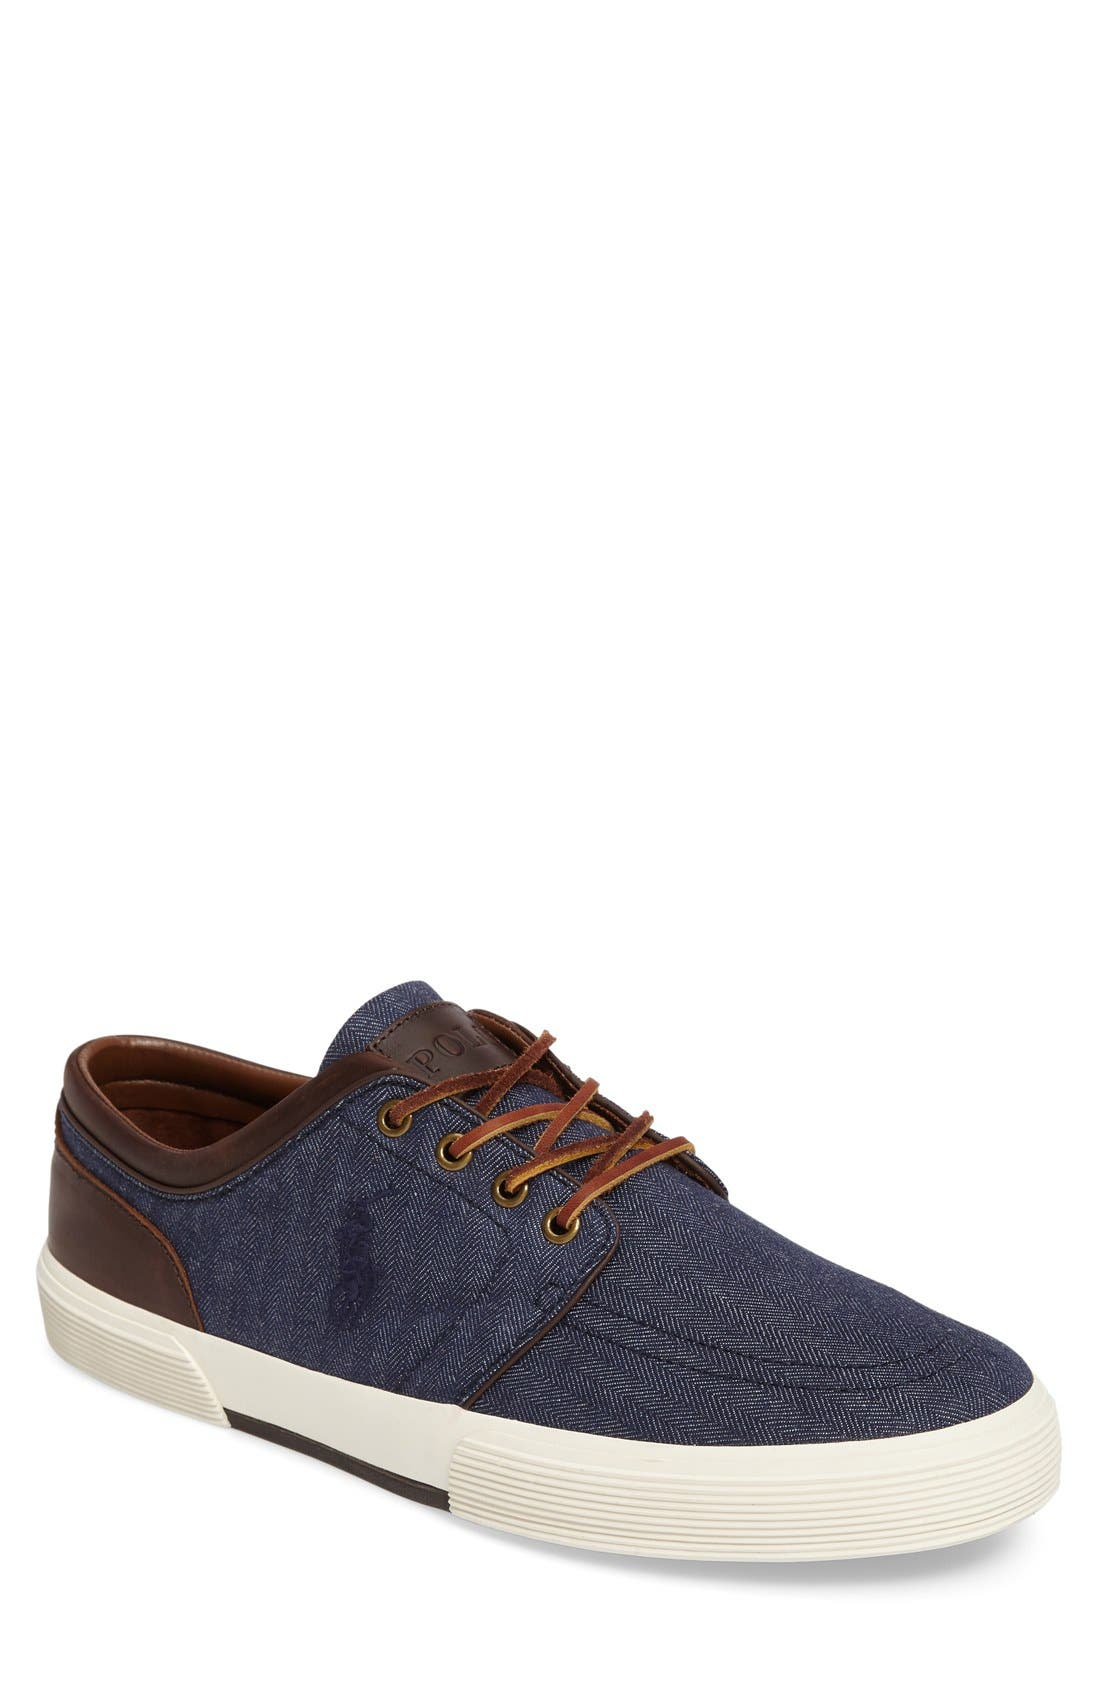 POLO RALPH LAUREN 'Faxon Low' Sneaker